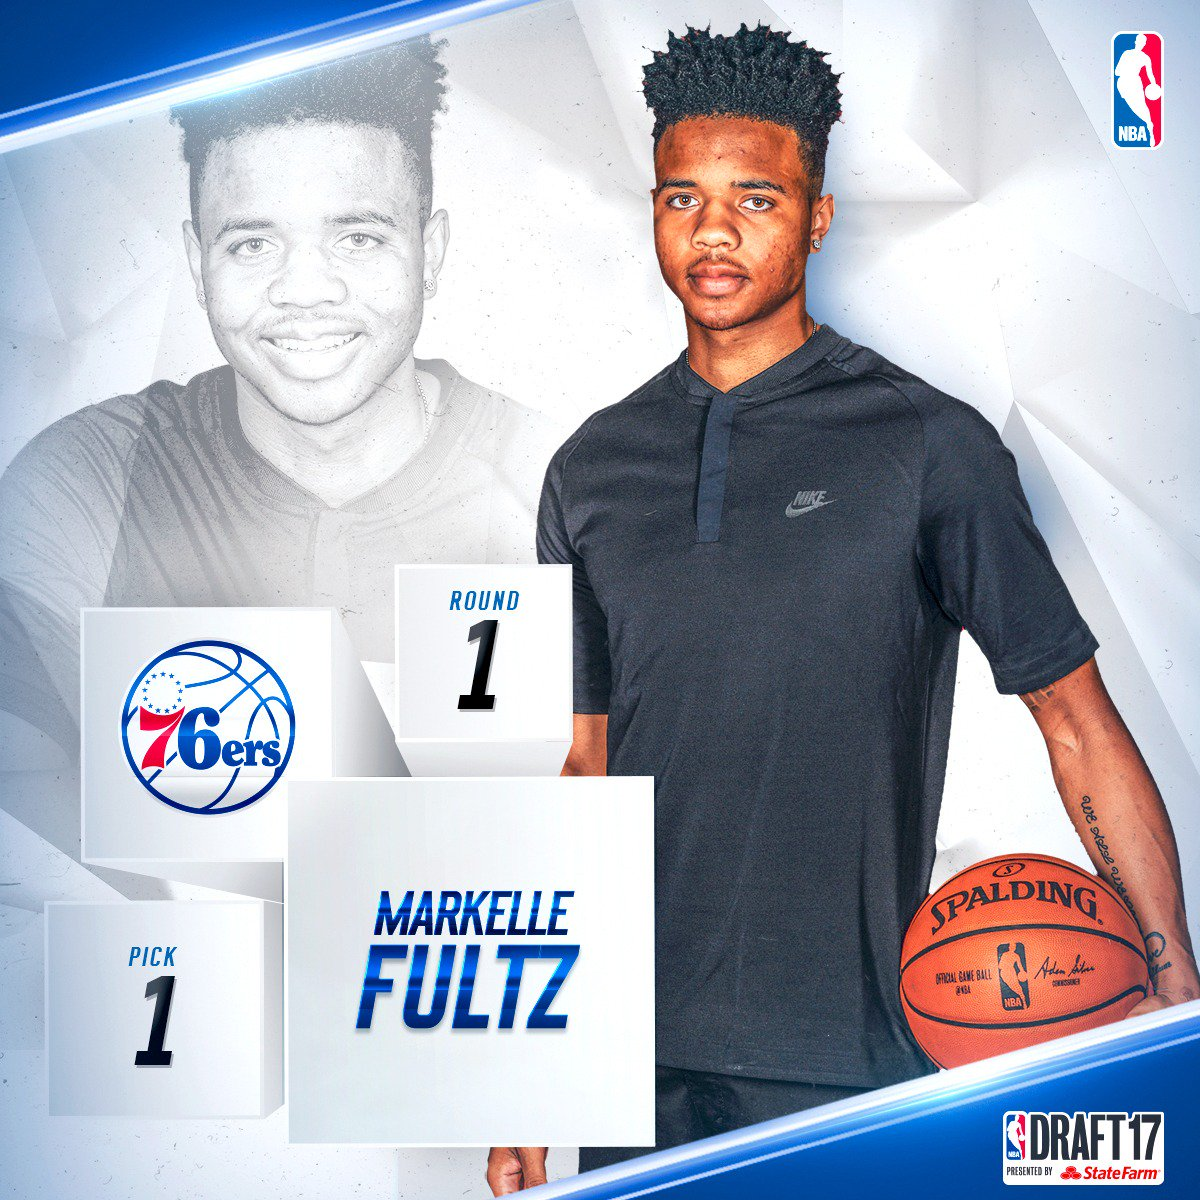 With the first pick in the 2017 #NBADraft, the @sixers select @Markell...